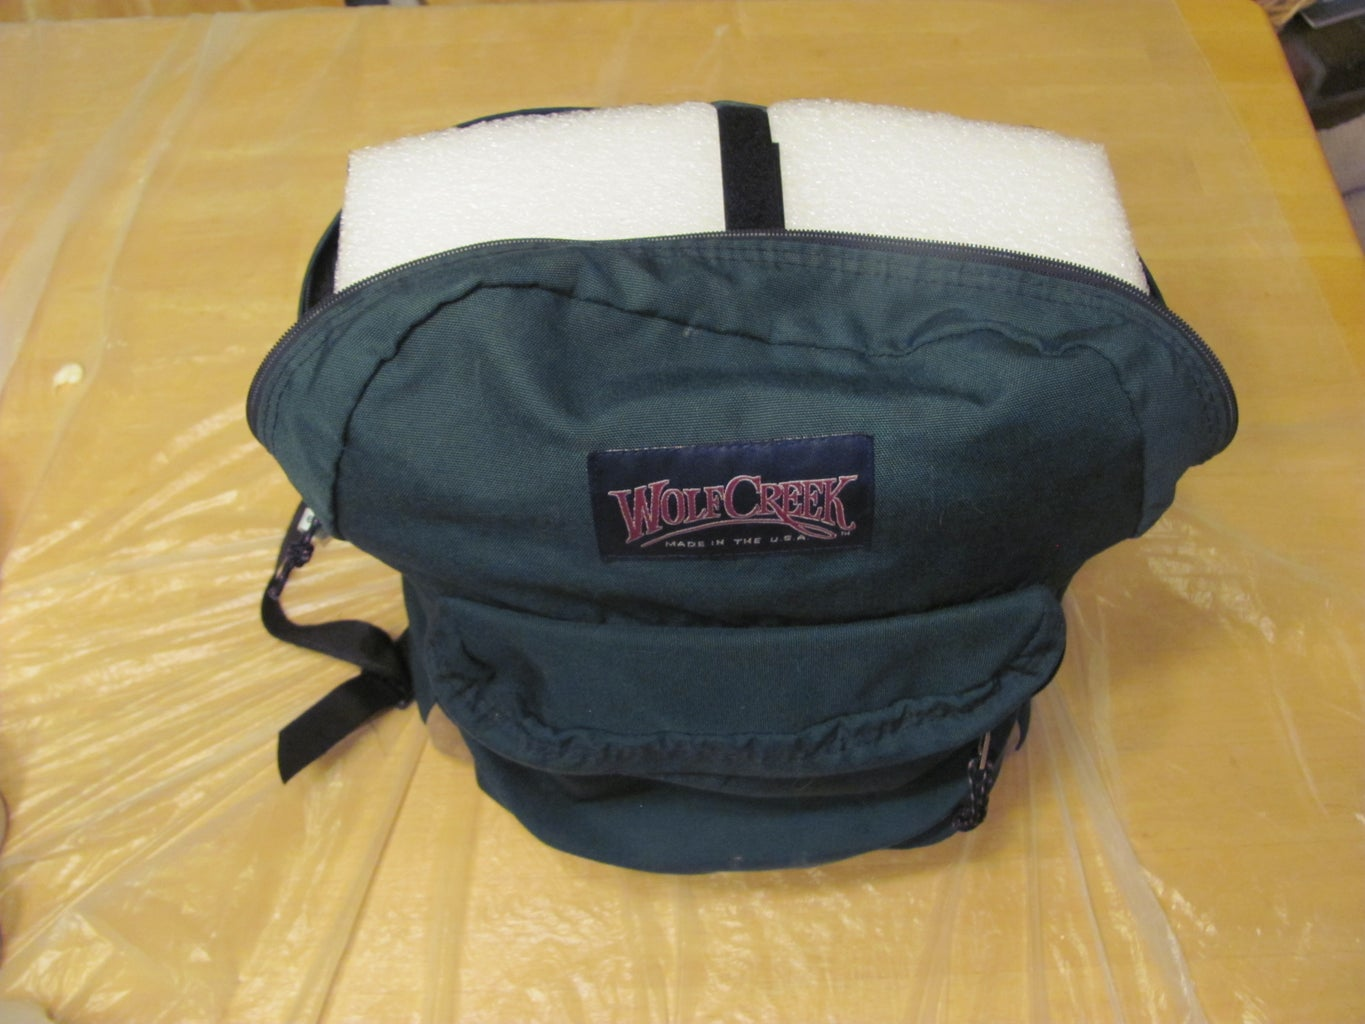 Now Enjoy Your Backpack Cooler - Go Take a Hike!